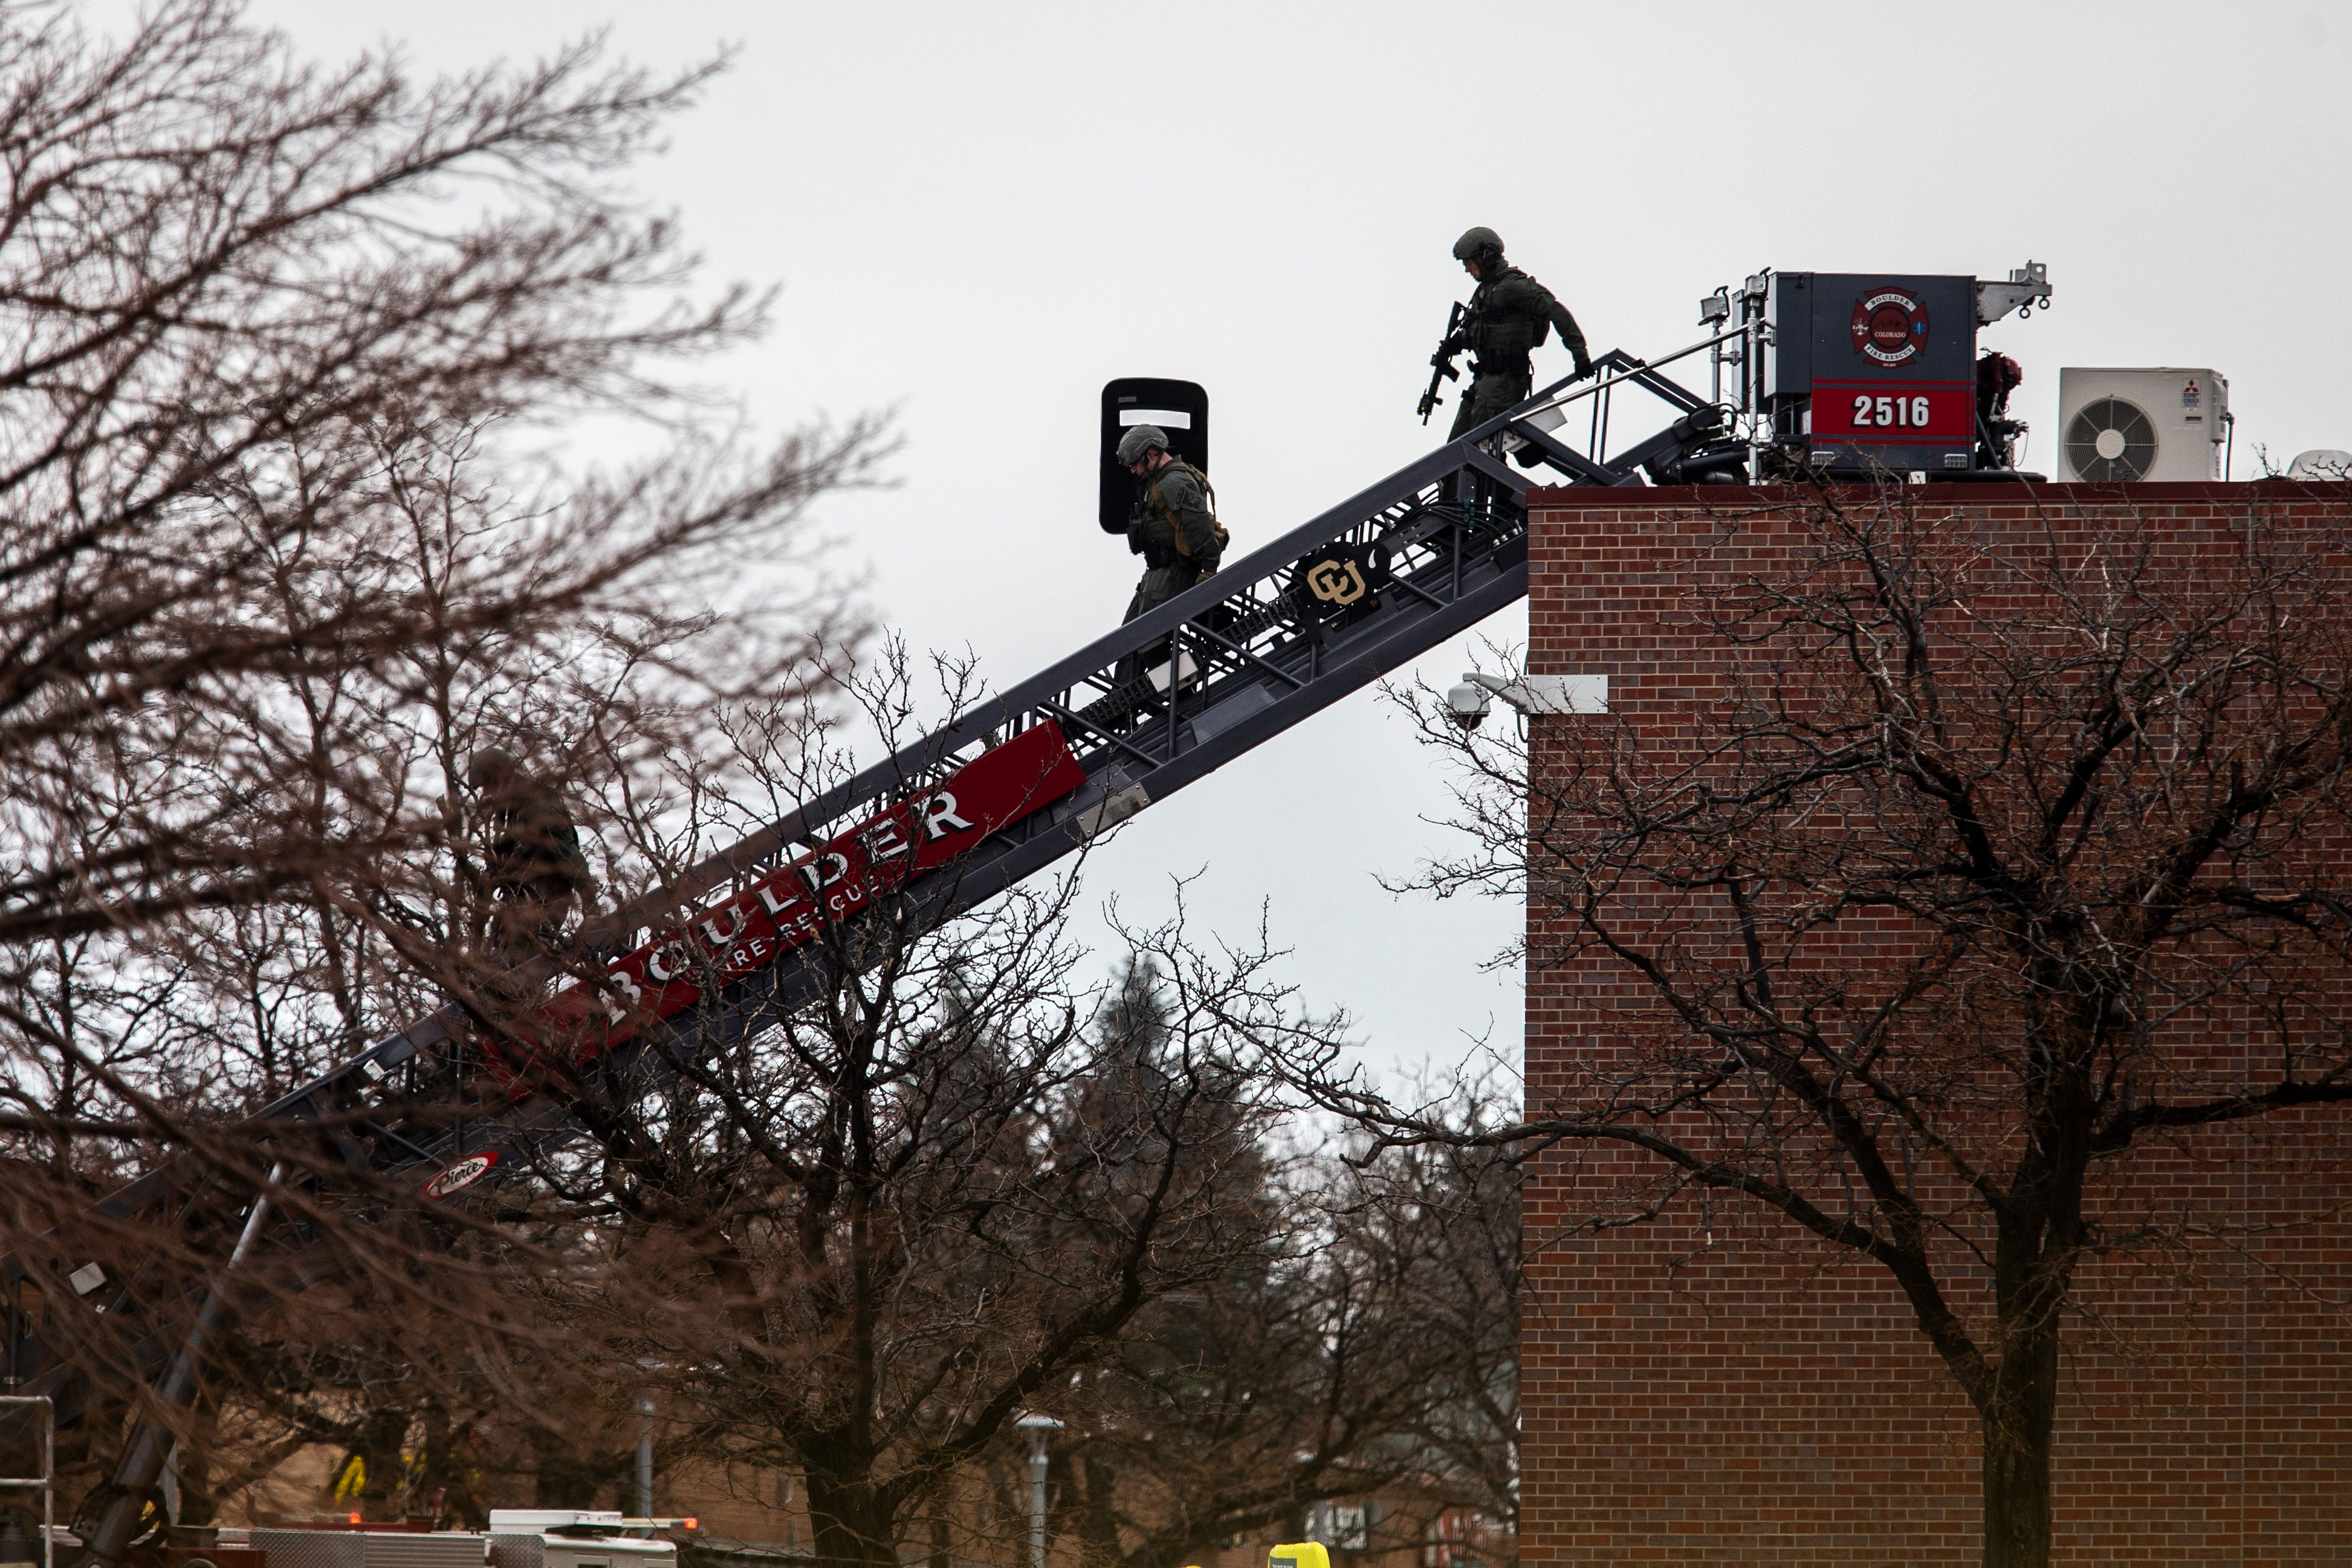 SWAT teams descend from the roof on a fire ladder after a gunman opened fire at a King Sooper's grocery store on March 22, 2021 in Boulder, Colo. Ten people, including a police officer, were killed in the attack.